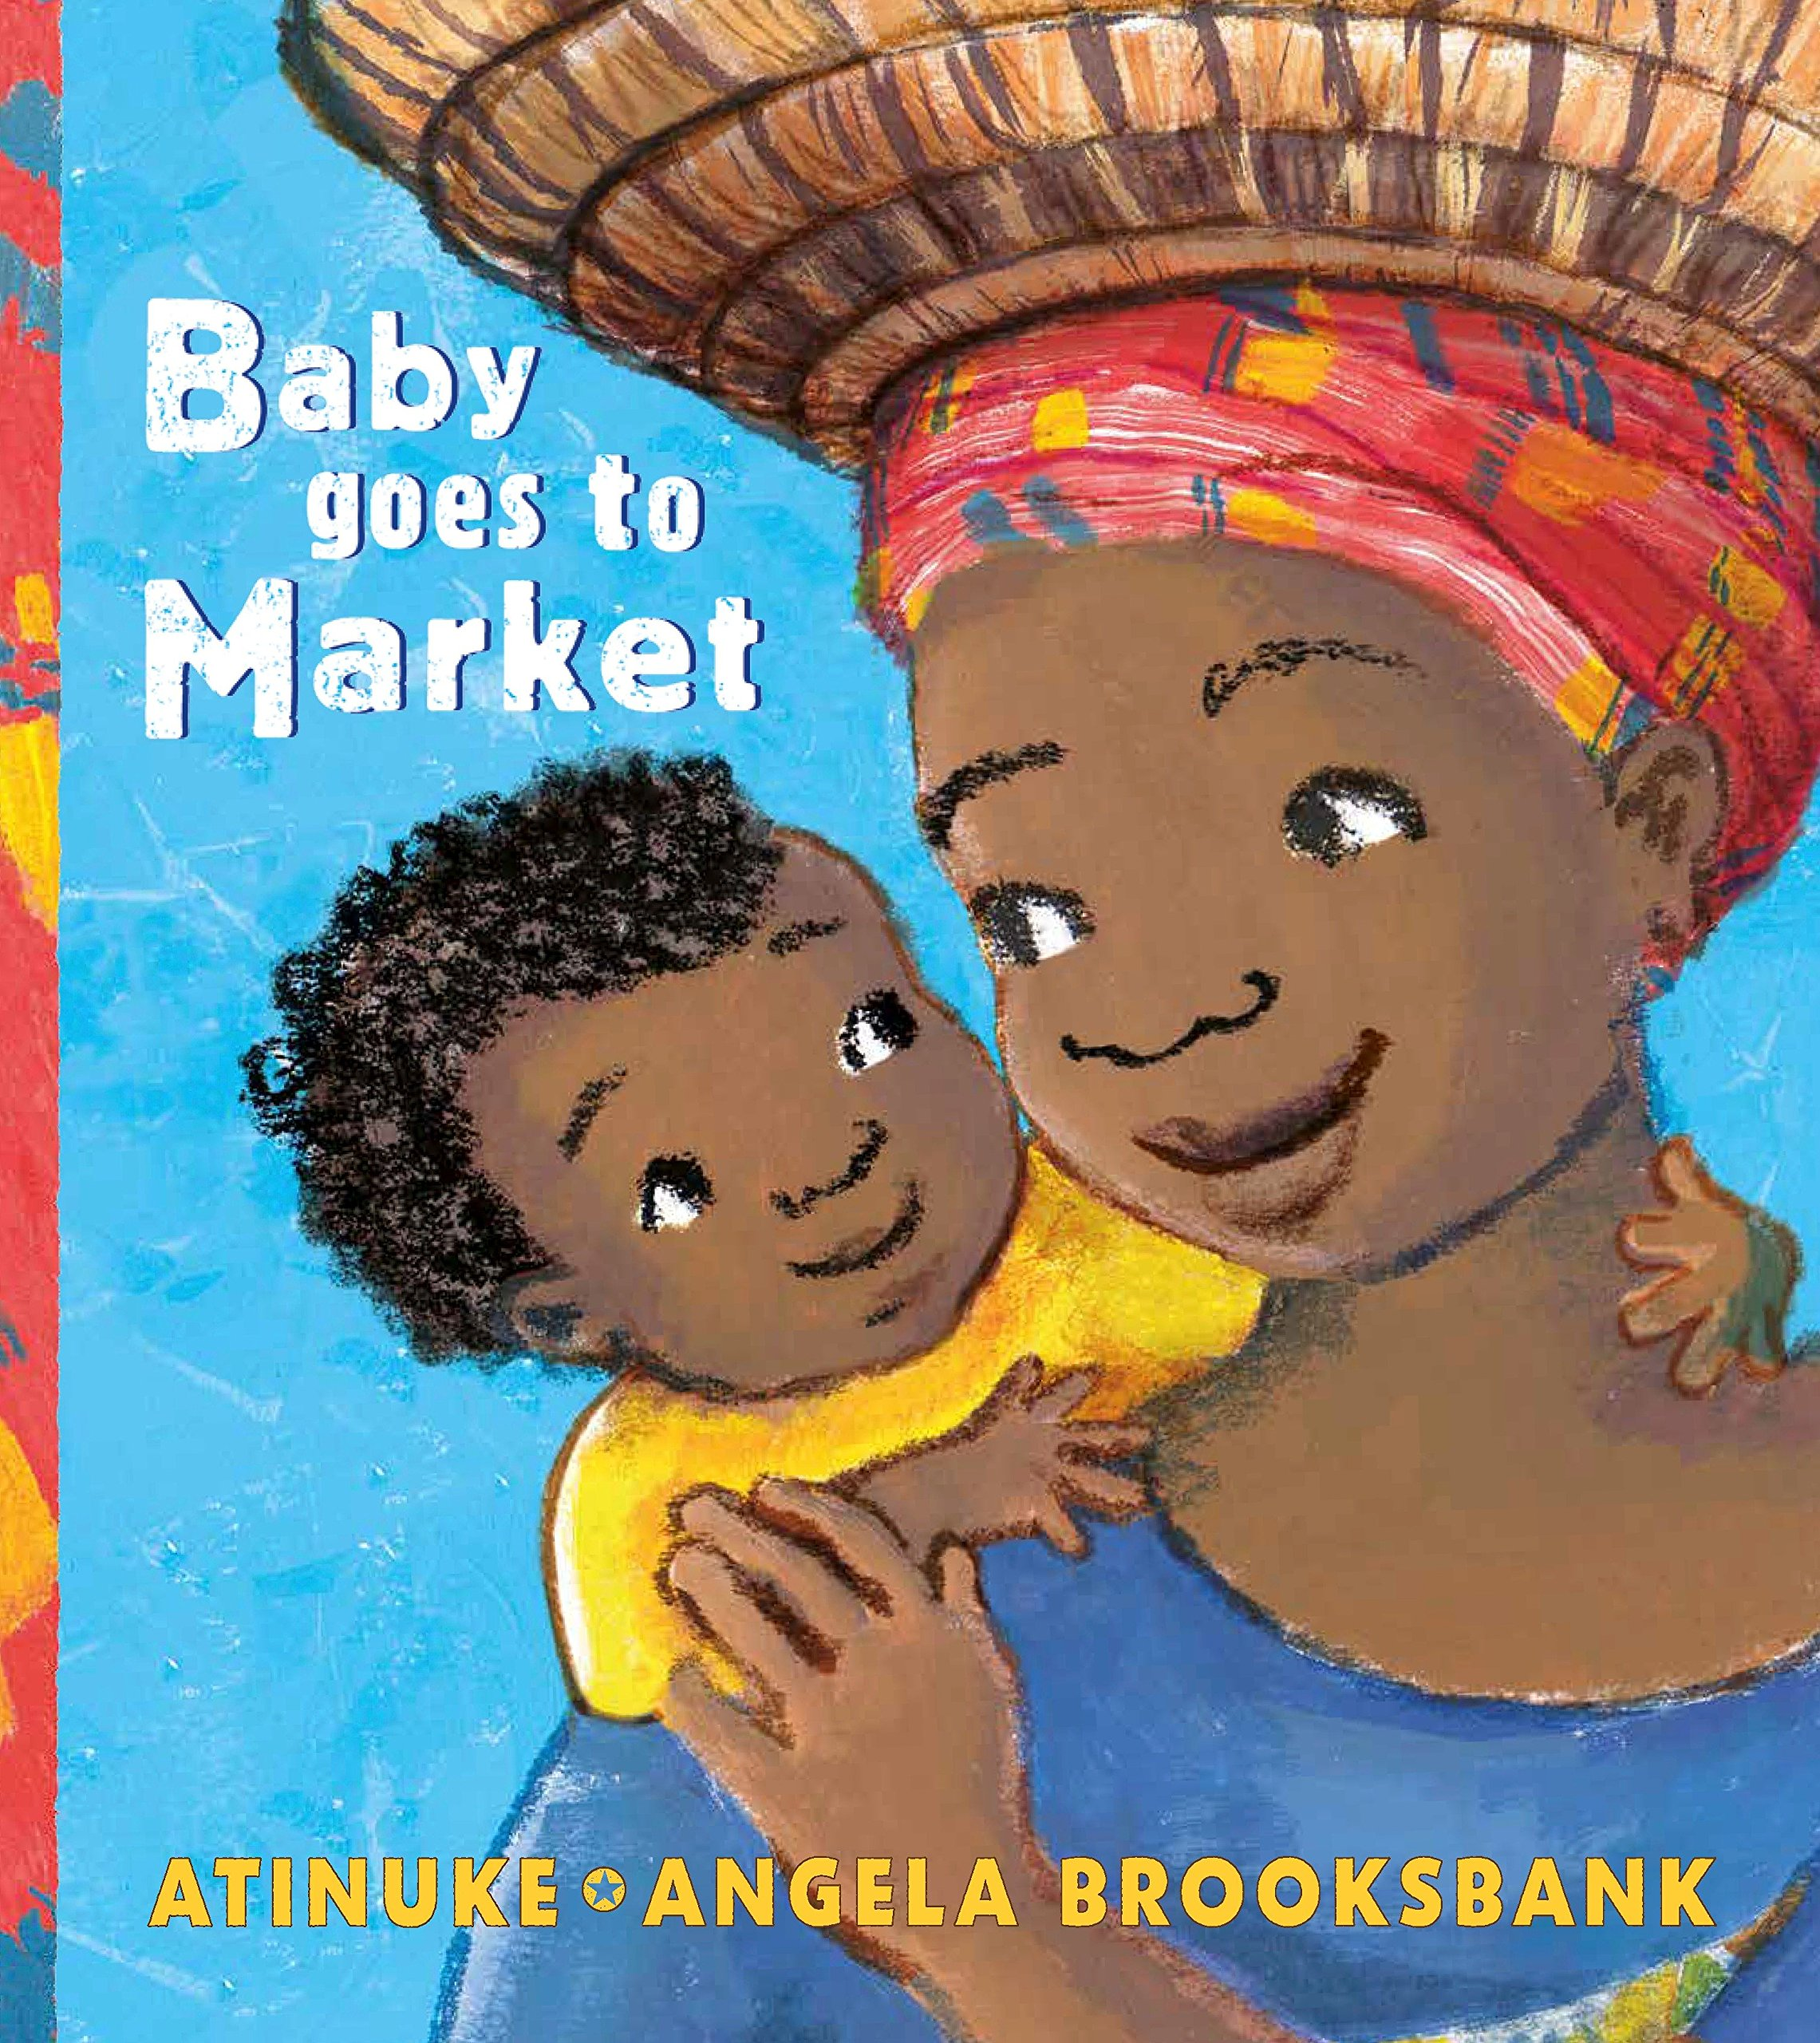 Baby Goes to Market written by Atinuke illustrated by Angela Brooksbank